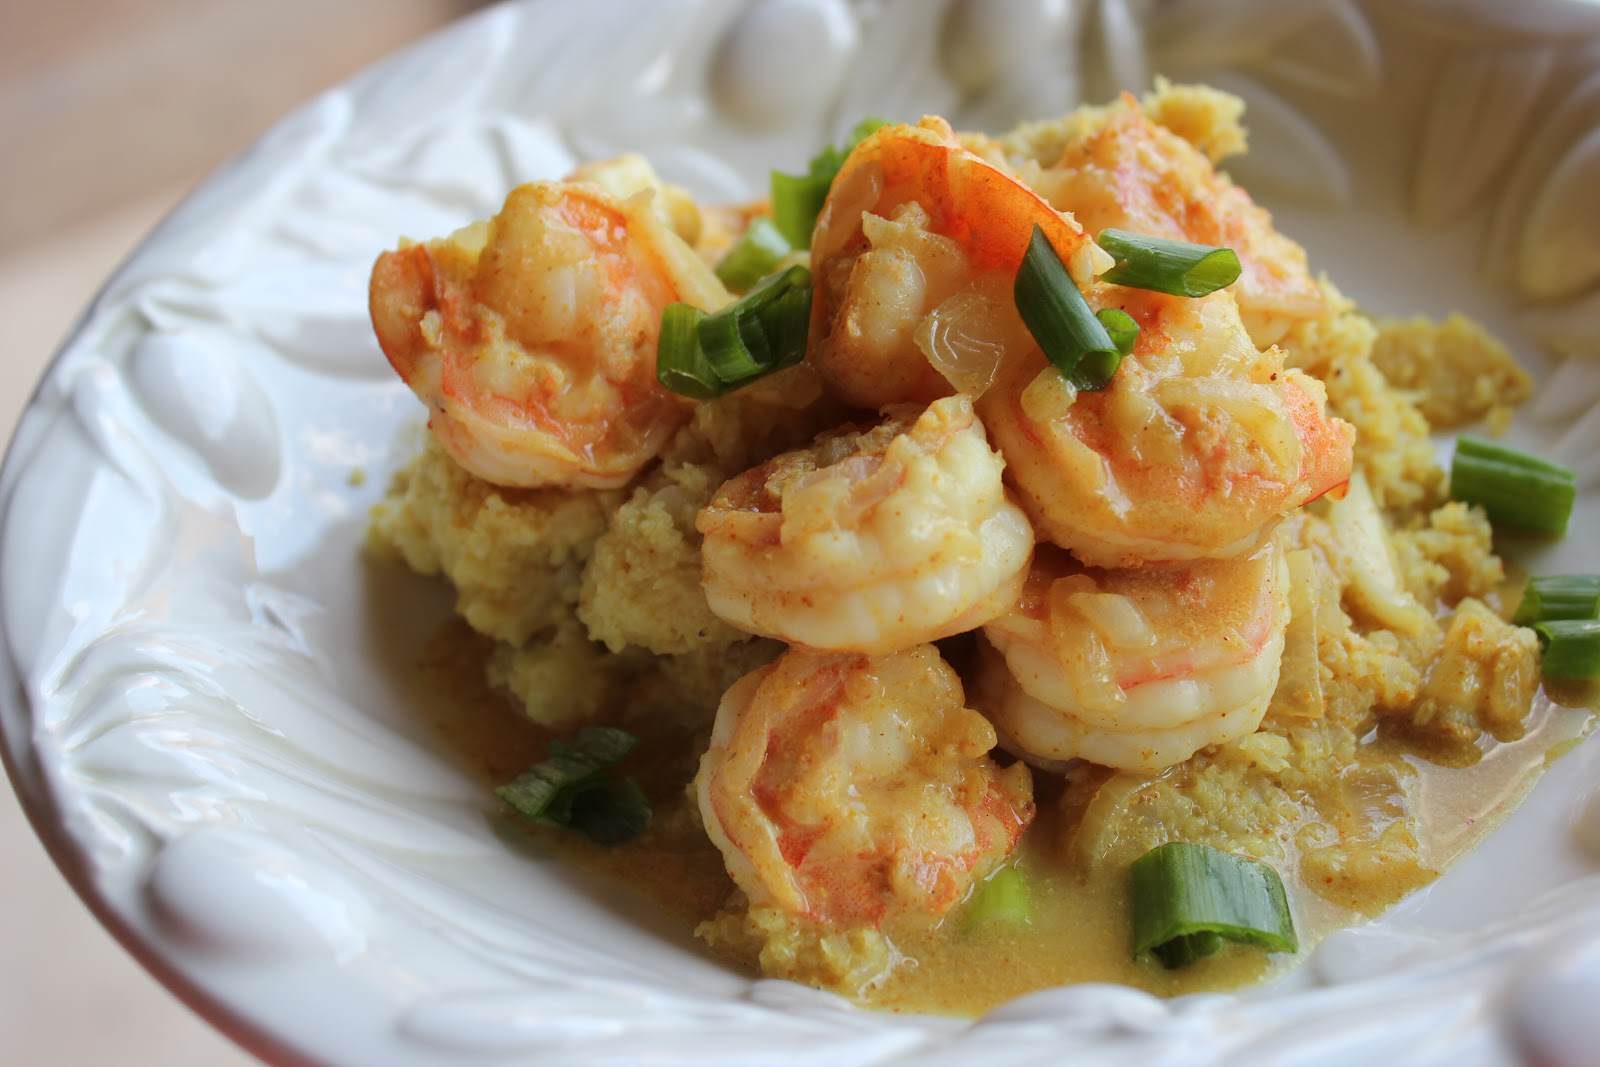 Paleo Thai Coconut Curry Shrimp over Cauliflower | Tiffany Lee Gaston